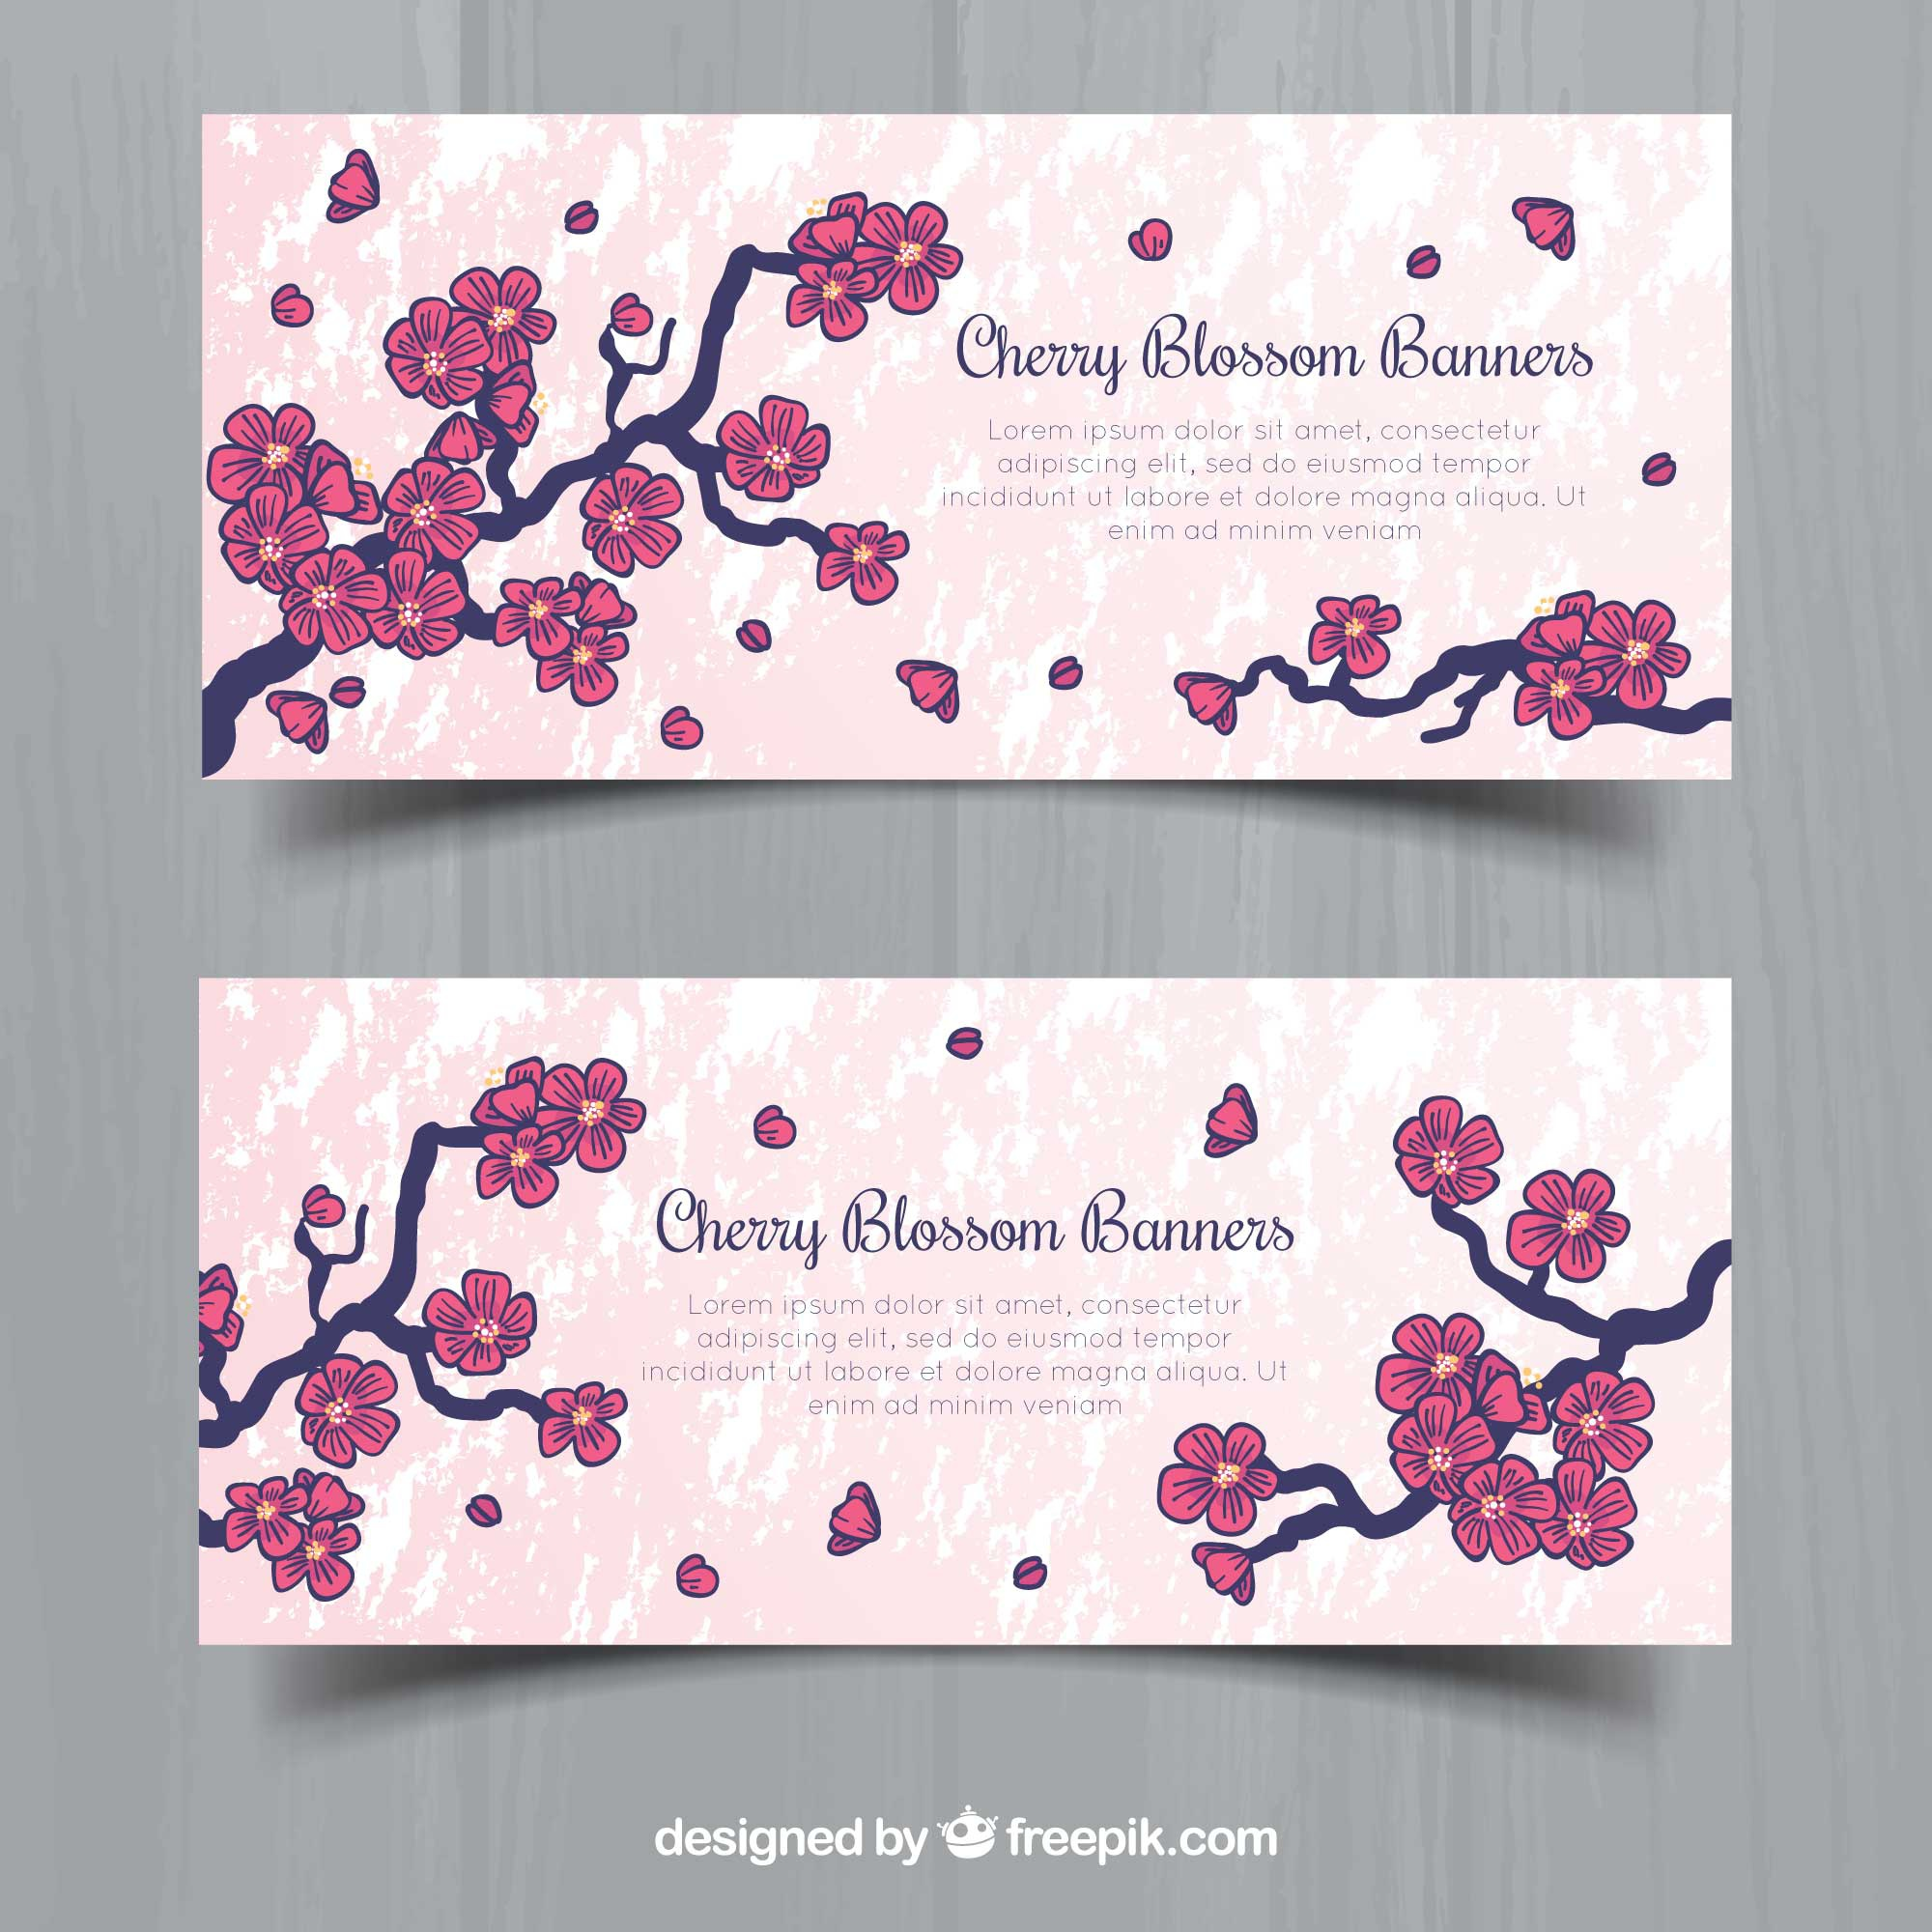 Decorative banners with hand-drawn cherry blossoms